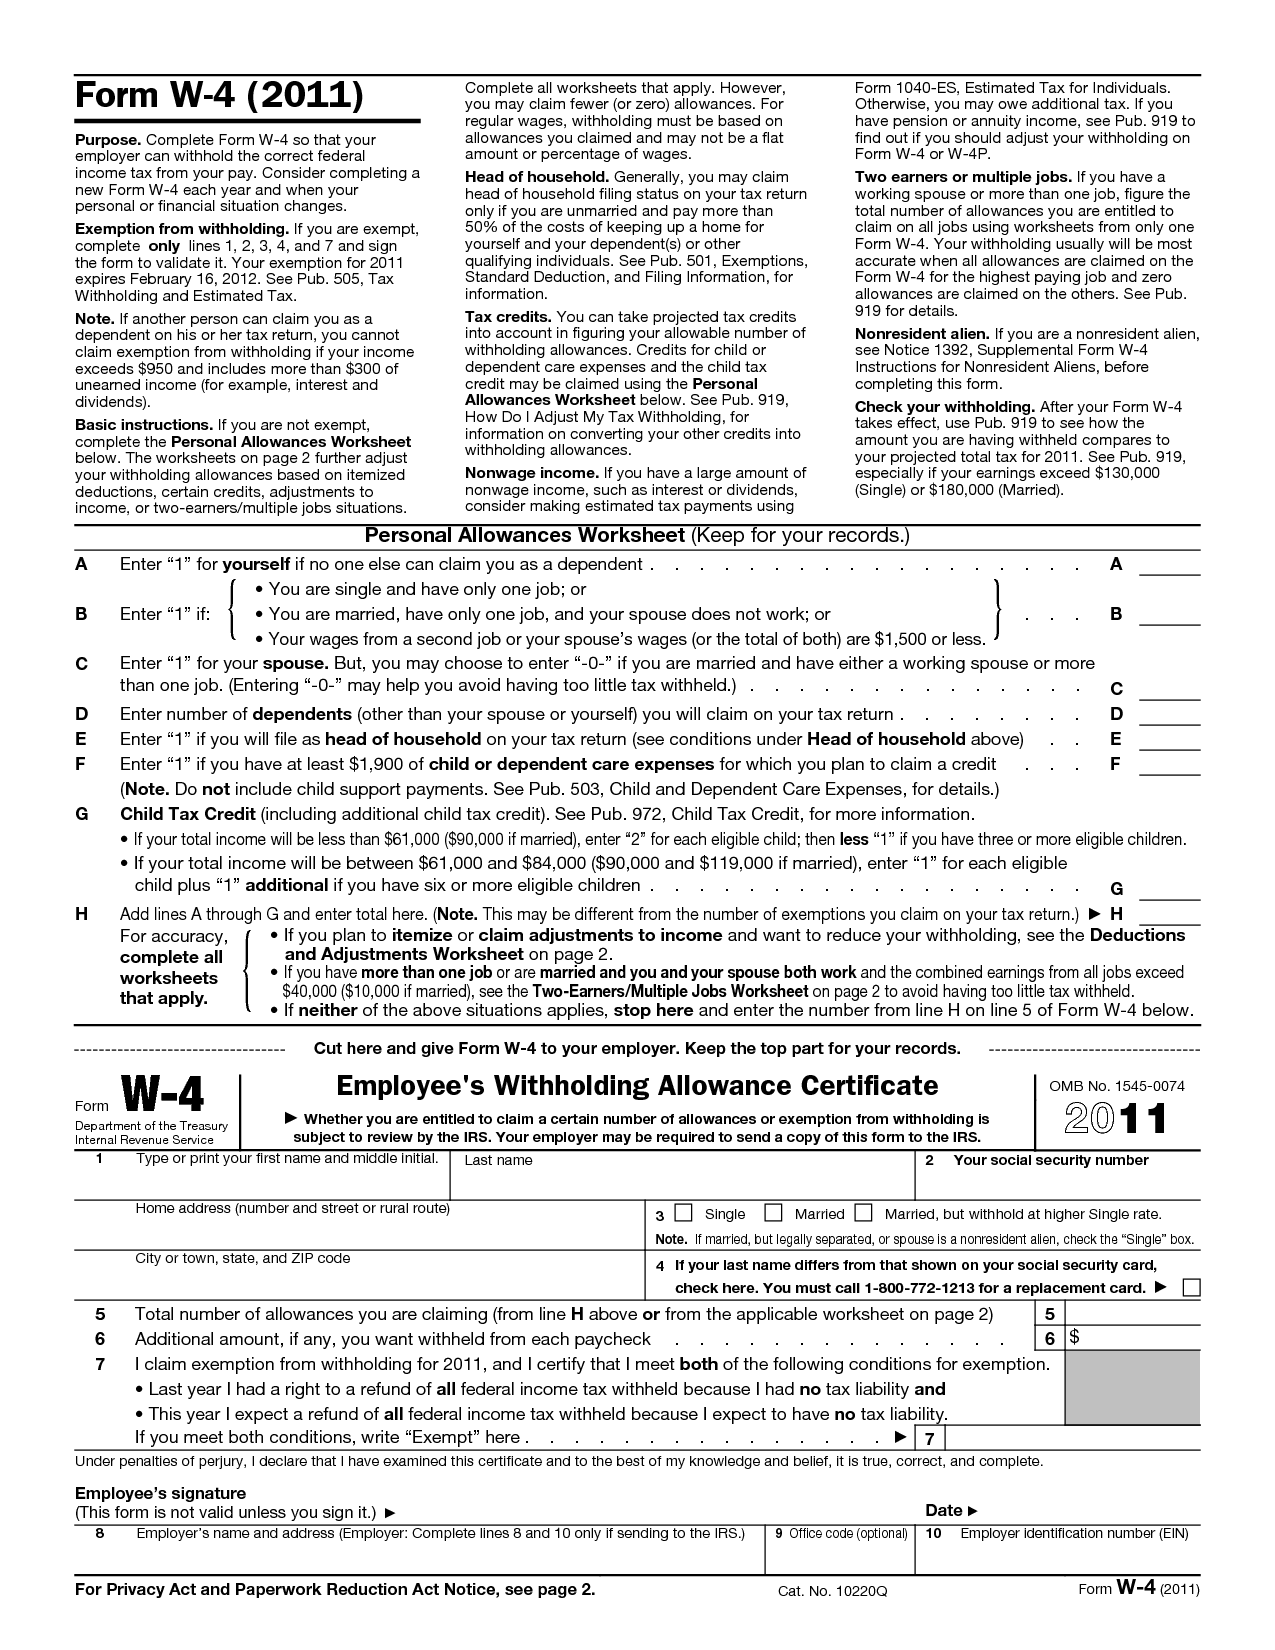 Tweak Your Withholding Taxes Filing A New W 4 Form With